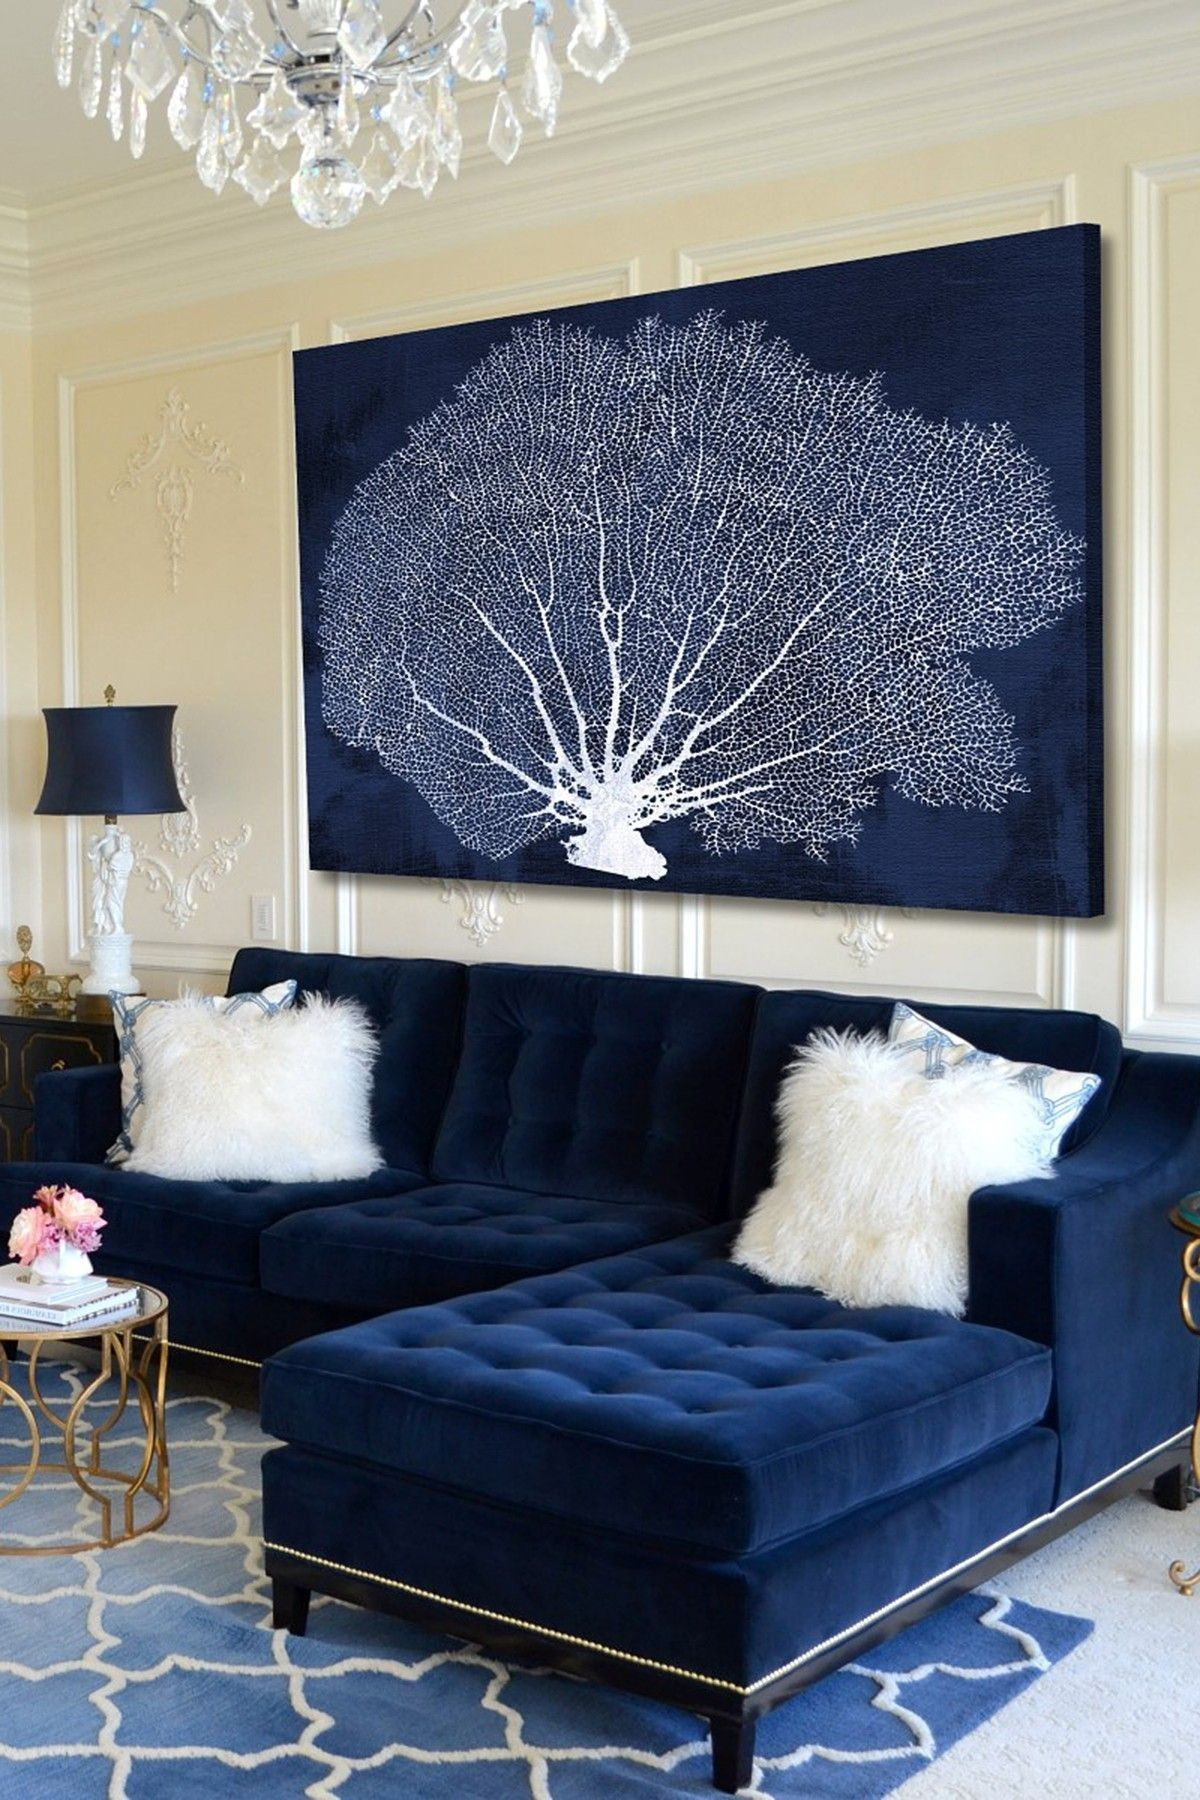 Pin By Sarah Mairose On Groovy Homelife Blue White Living Room